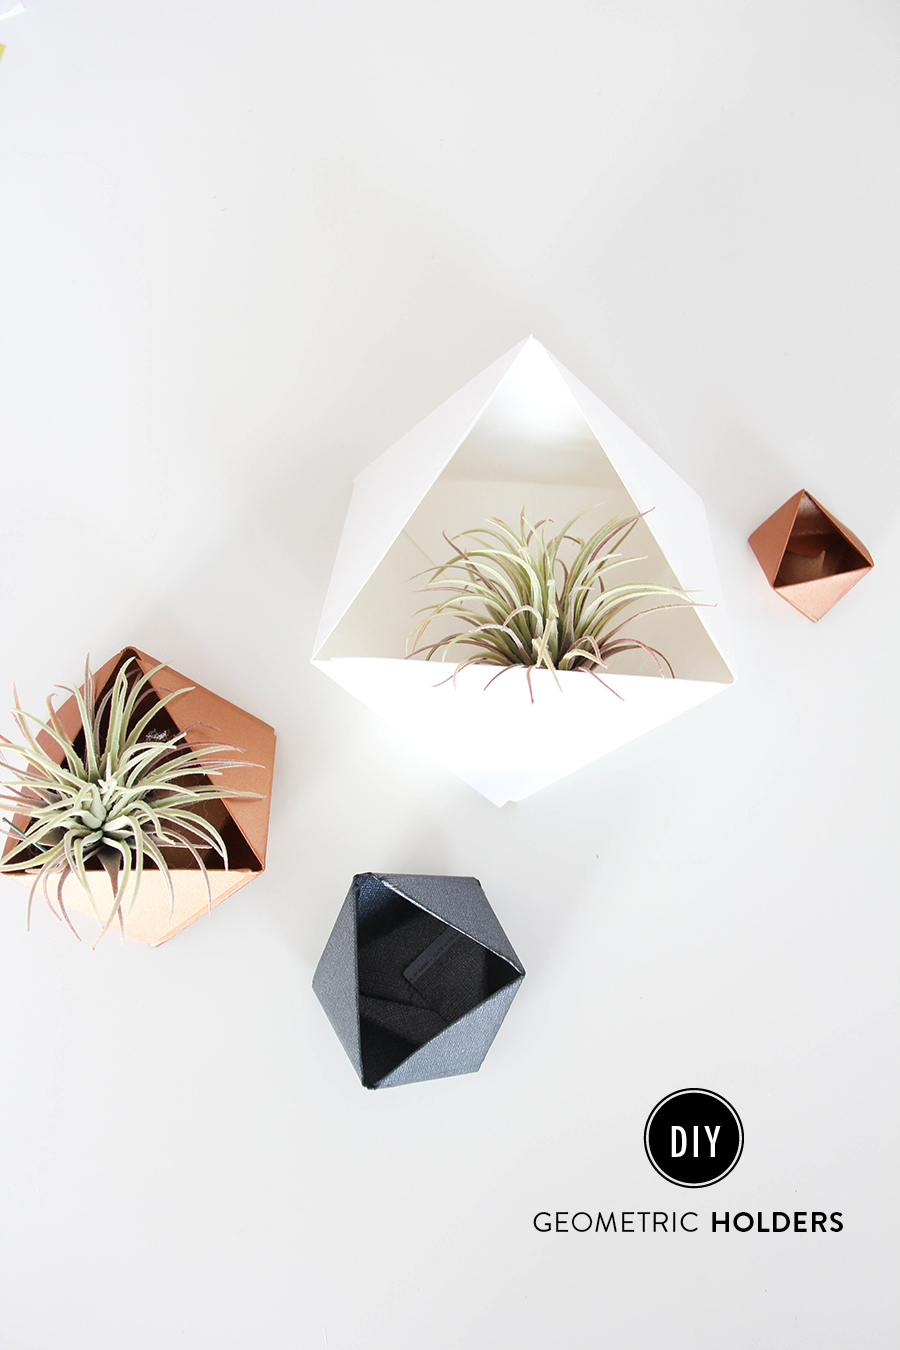 DIY Renters Decor Ideas - DIY Geometric Holders - Cool DIY Projects for Those Renting Aparments, Condos or Dorm Rooms - Easy Temporary Wall Art, Contact Paper, Washi Tape and Shelves to Make at Home #diyhomedecor #diyideas